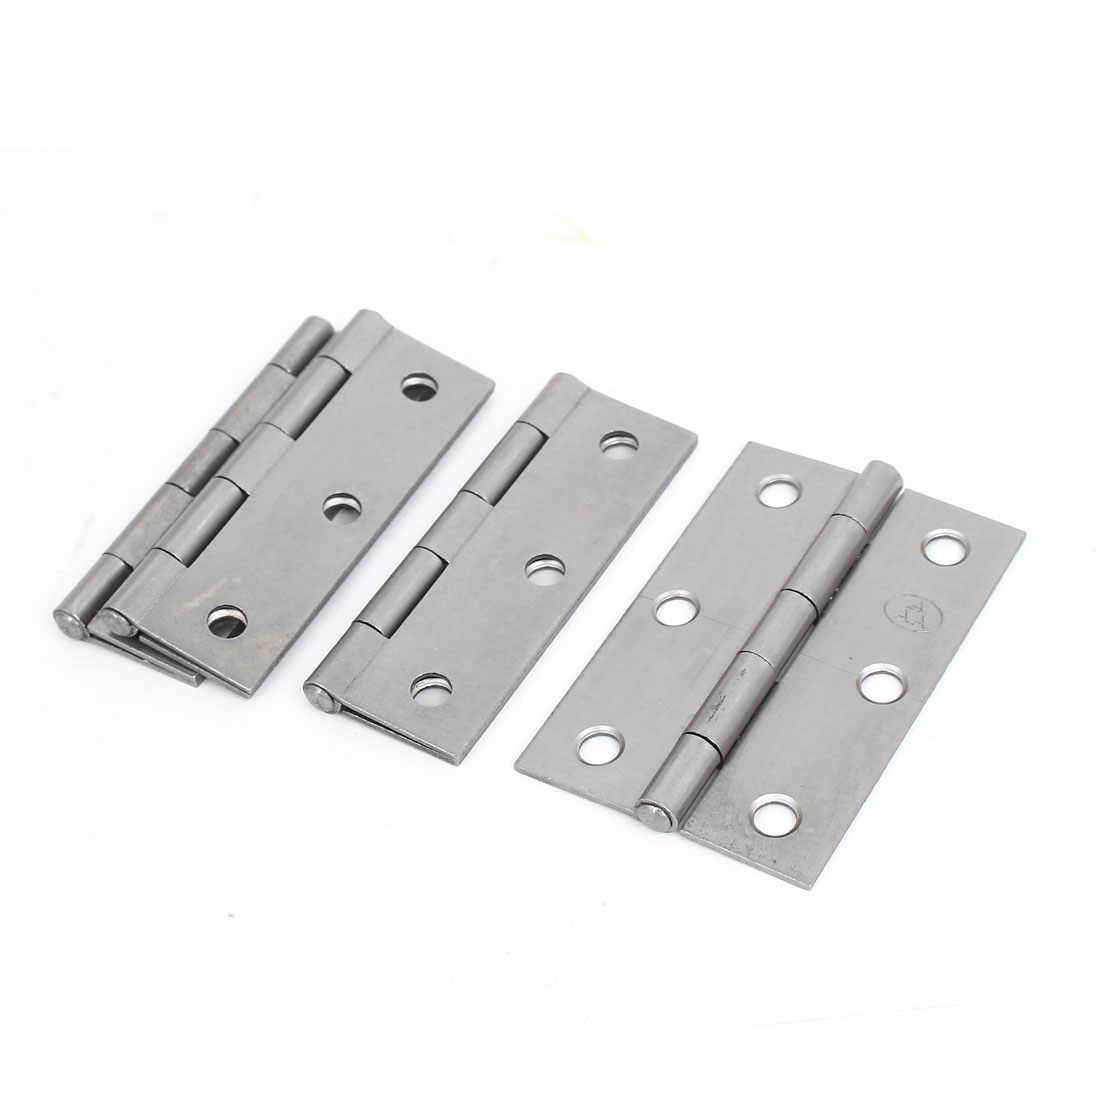 "Cabinet Drawer Foldable Iron Door Butt Hinge Silver Gray 3"" Length 4pcs"